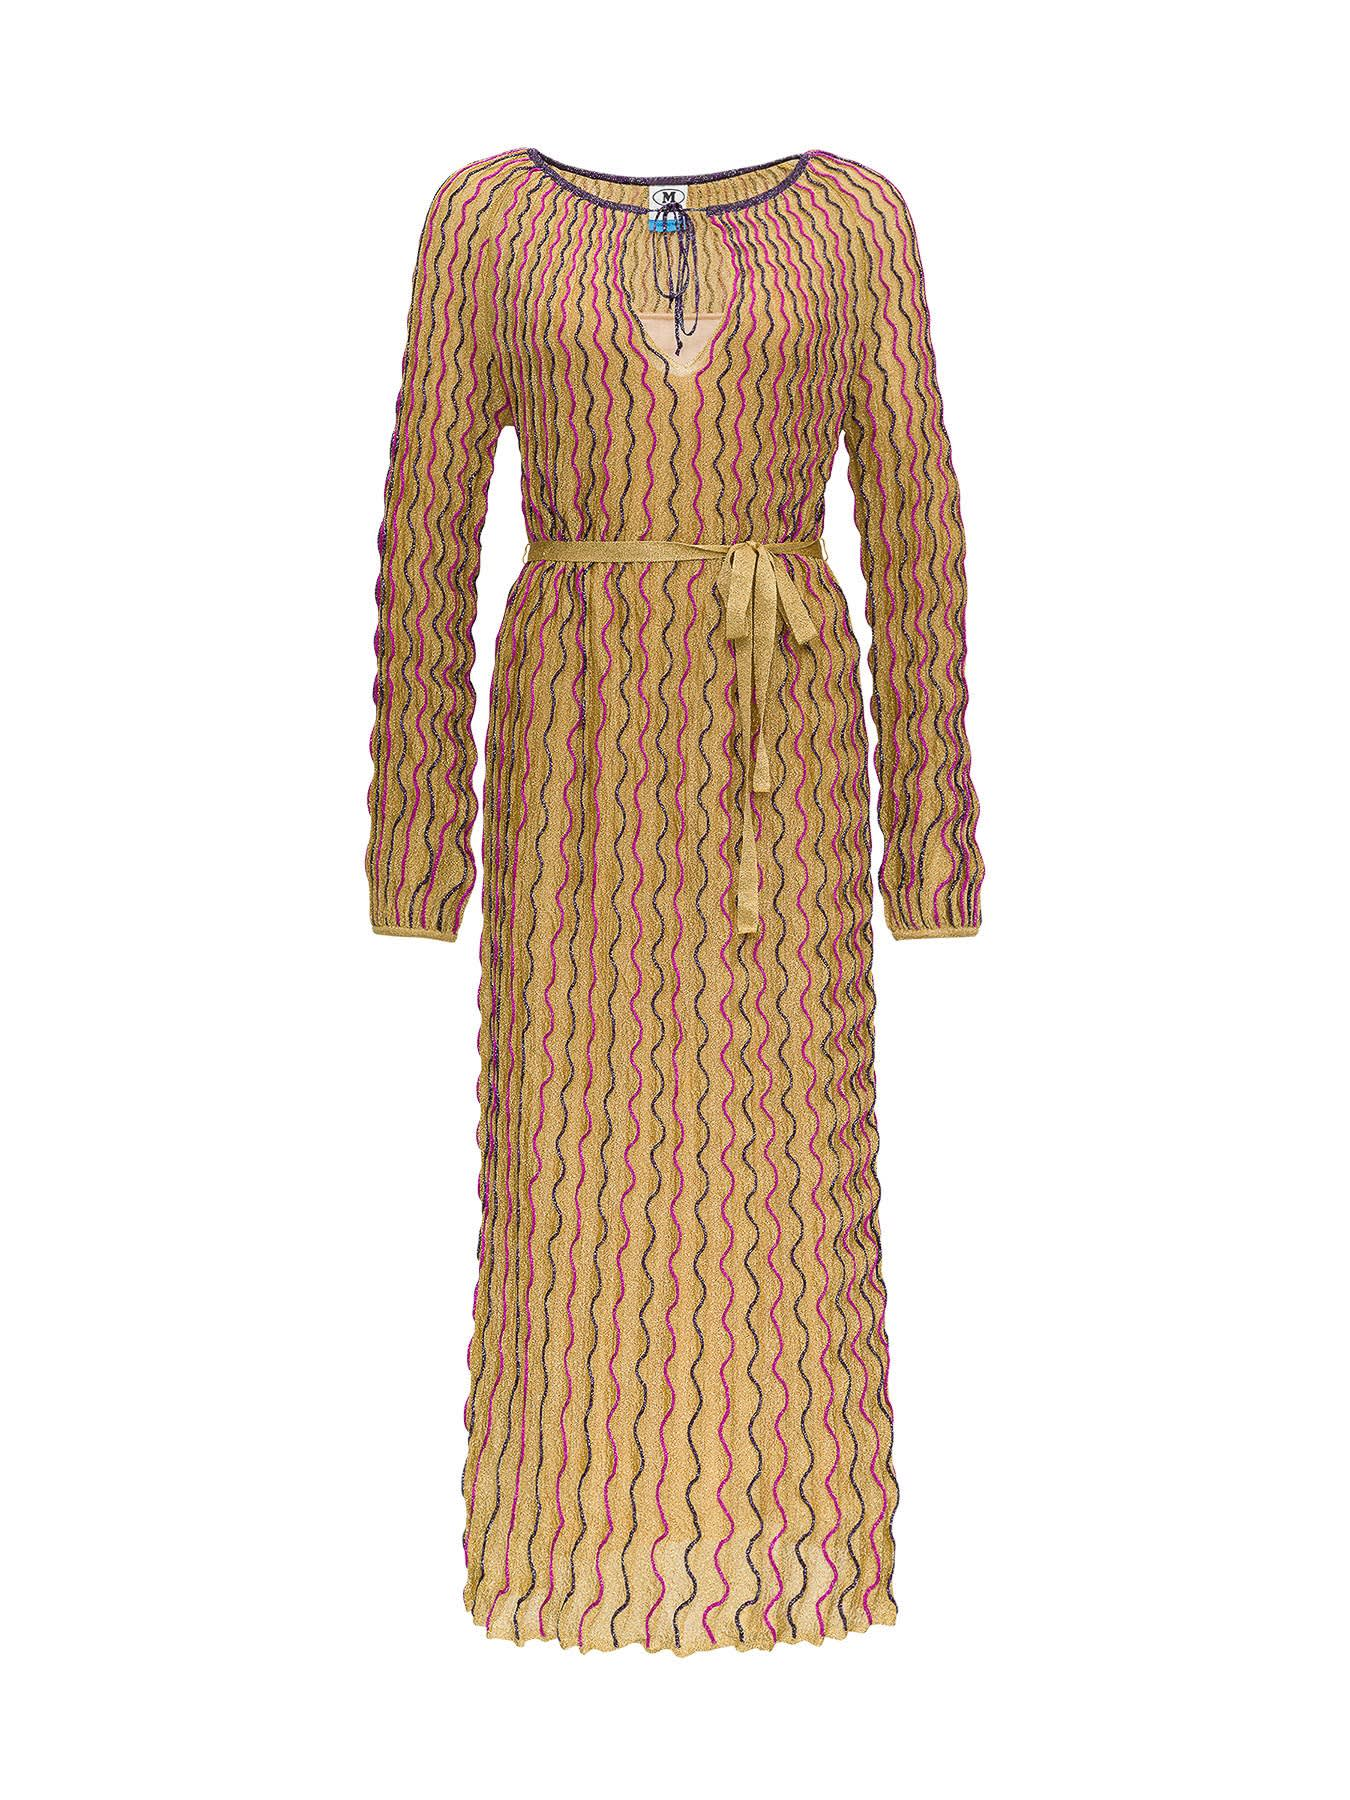 M Missoni GOLD DRESS